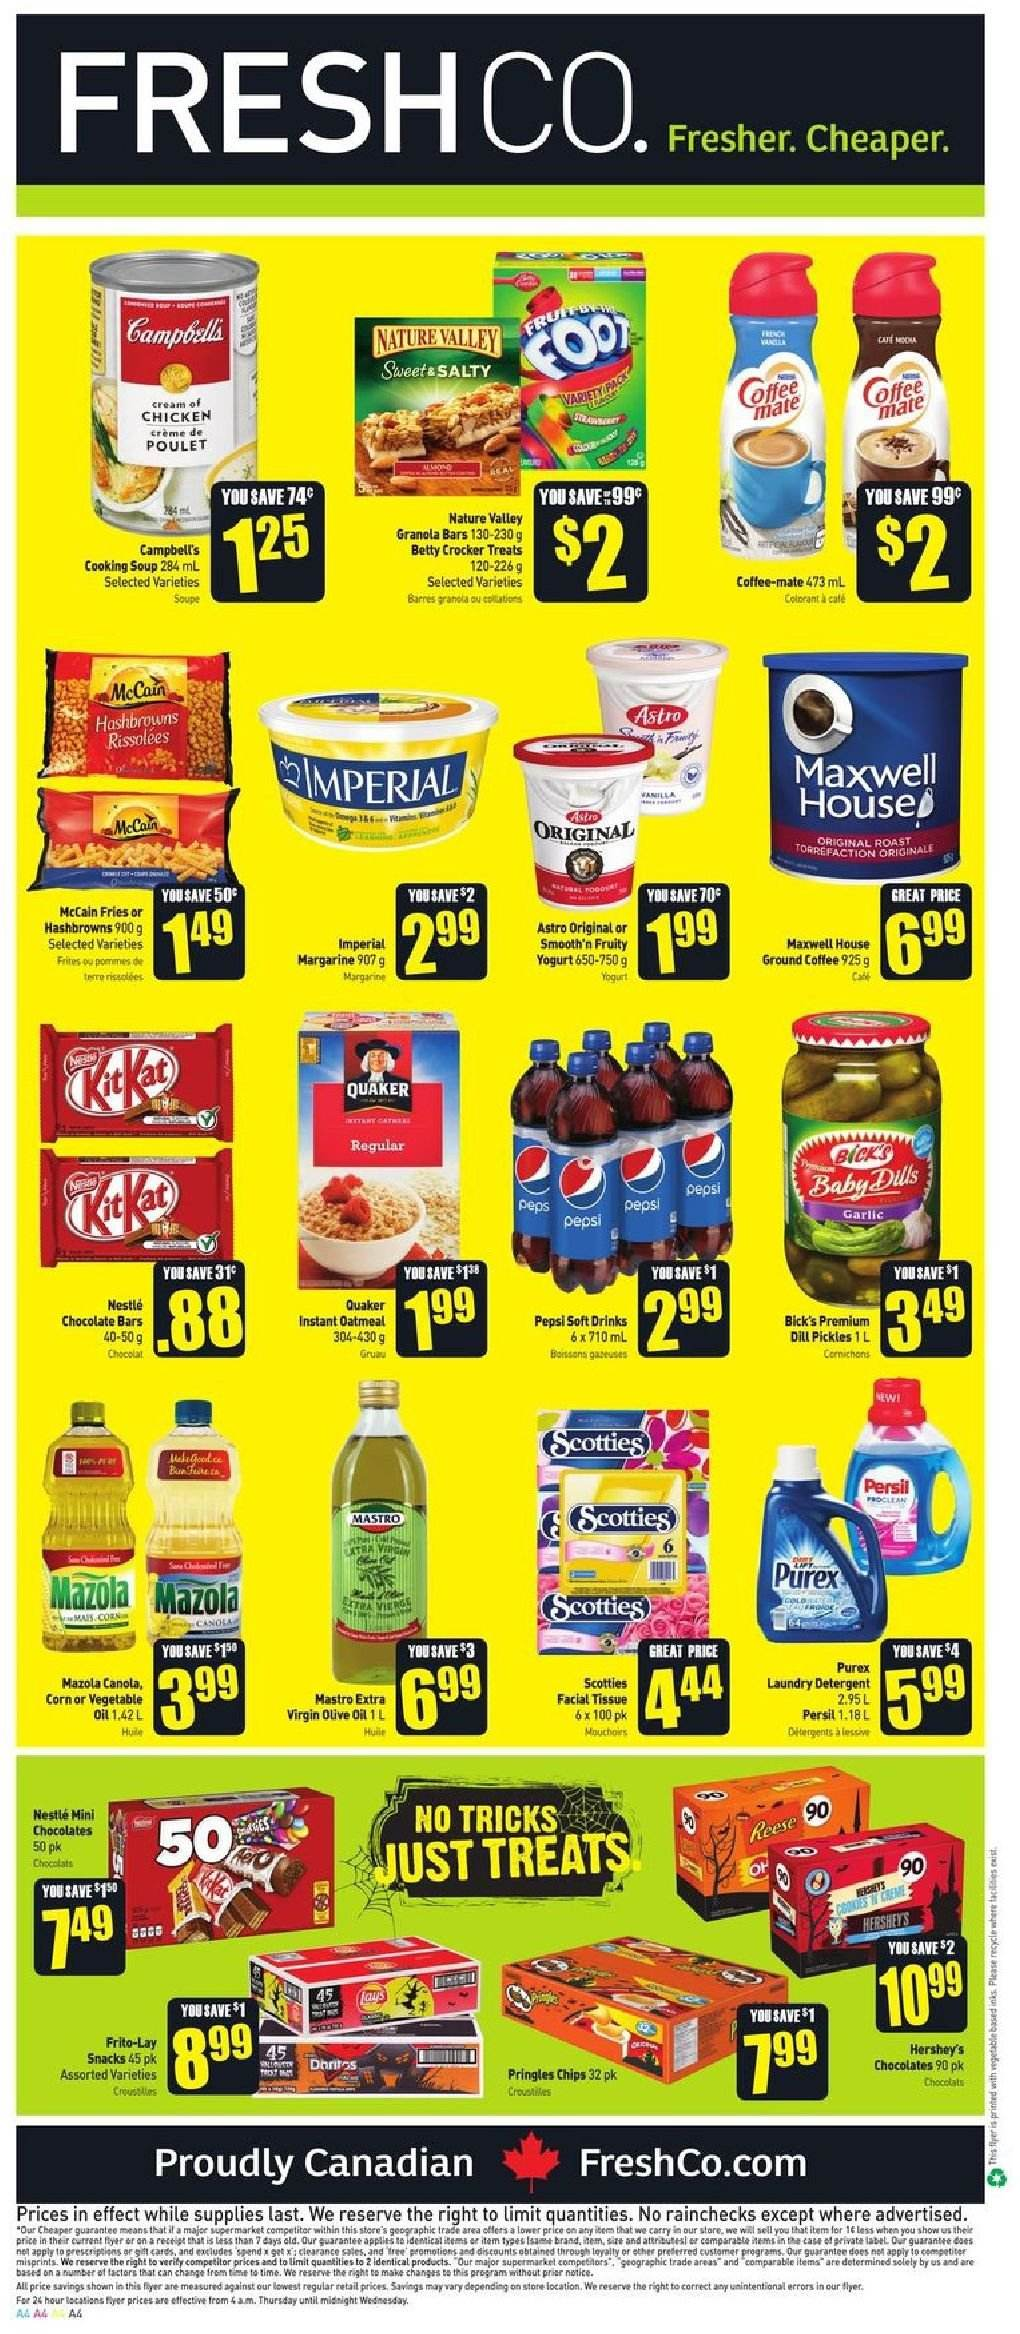 FreshCo. Flyer  - October 11, 2018 - October 17, 2018. Page 4.